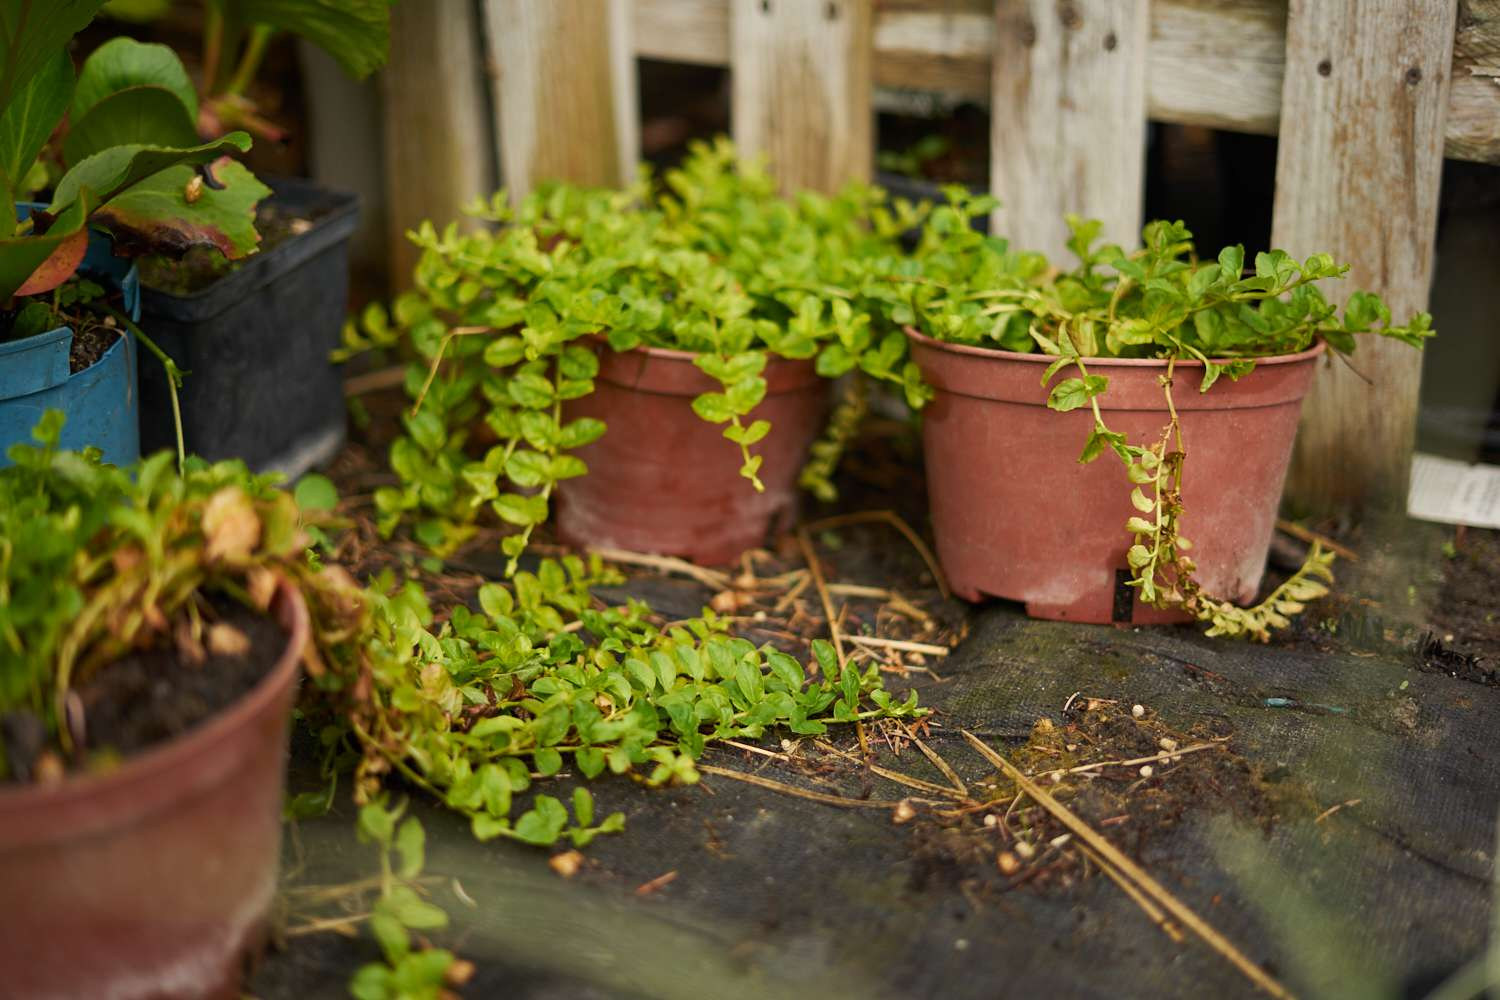 creeping jenny plant grows out of orange plant containers near wooden fence